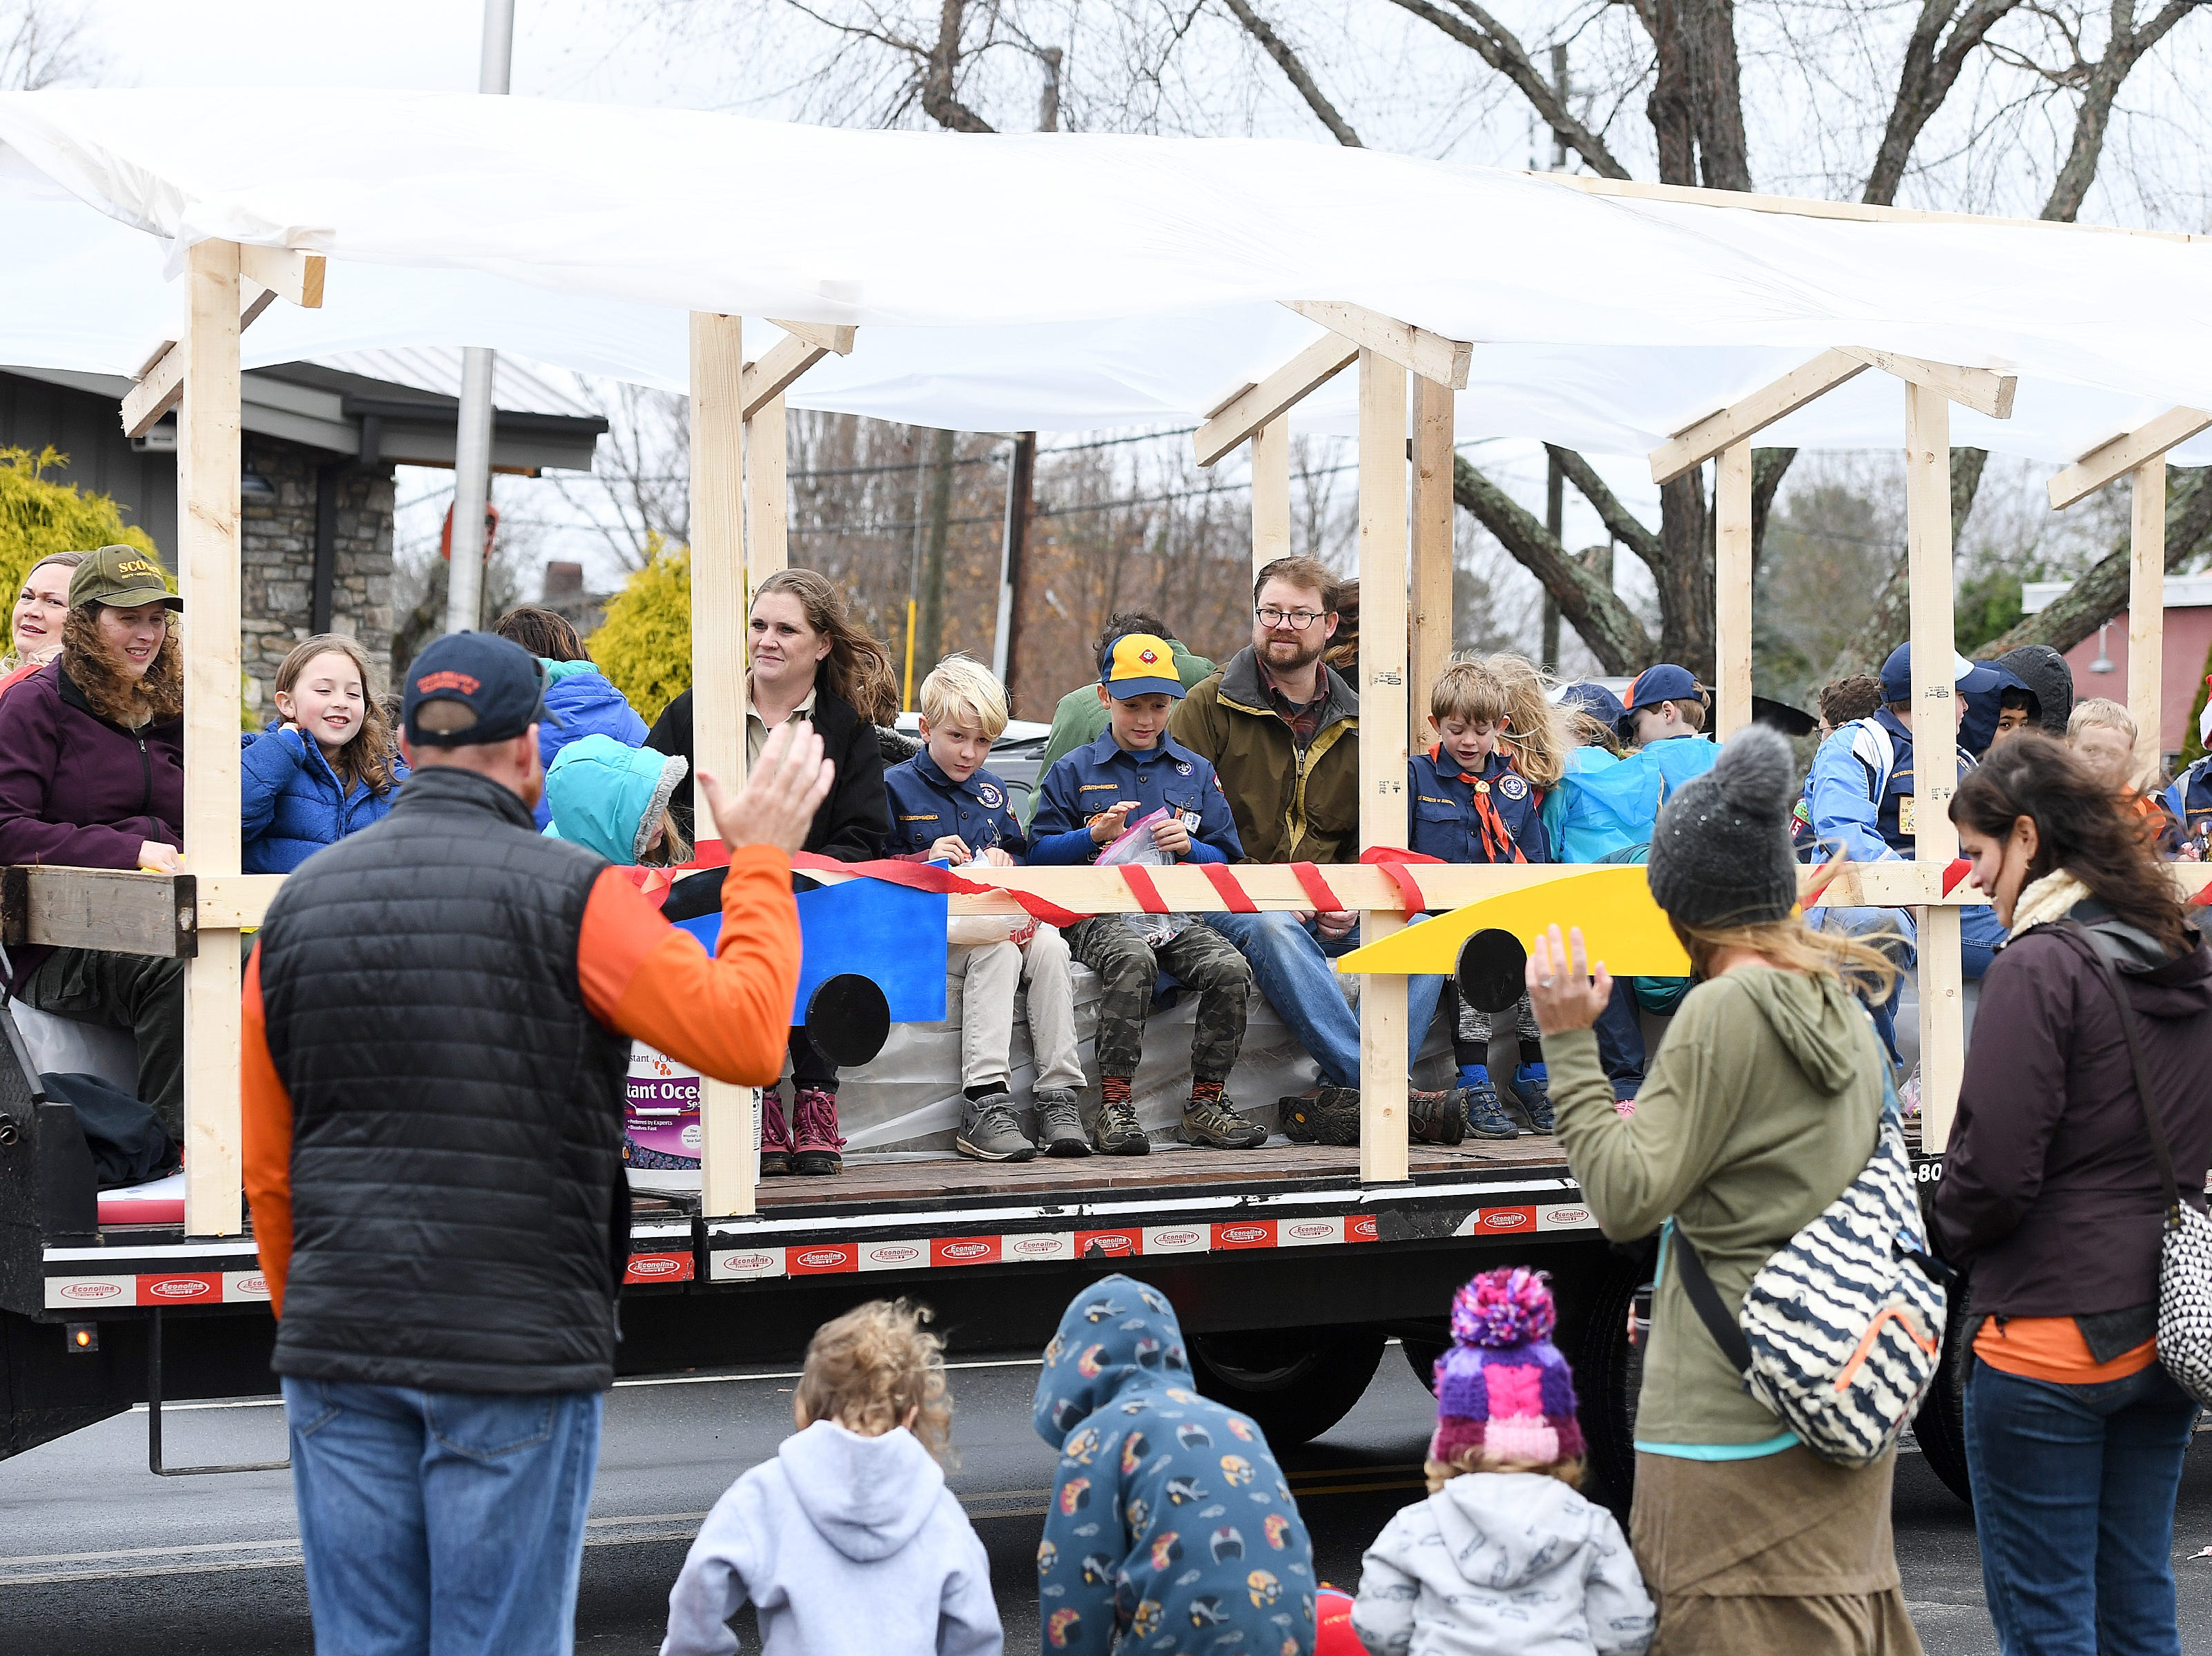 Cub Scouts and their families wave to people on the sidewalk from their float as they ride in the Weaverville Christmas Parade on Dec. 1, 2018.